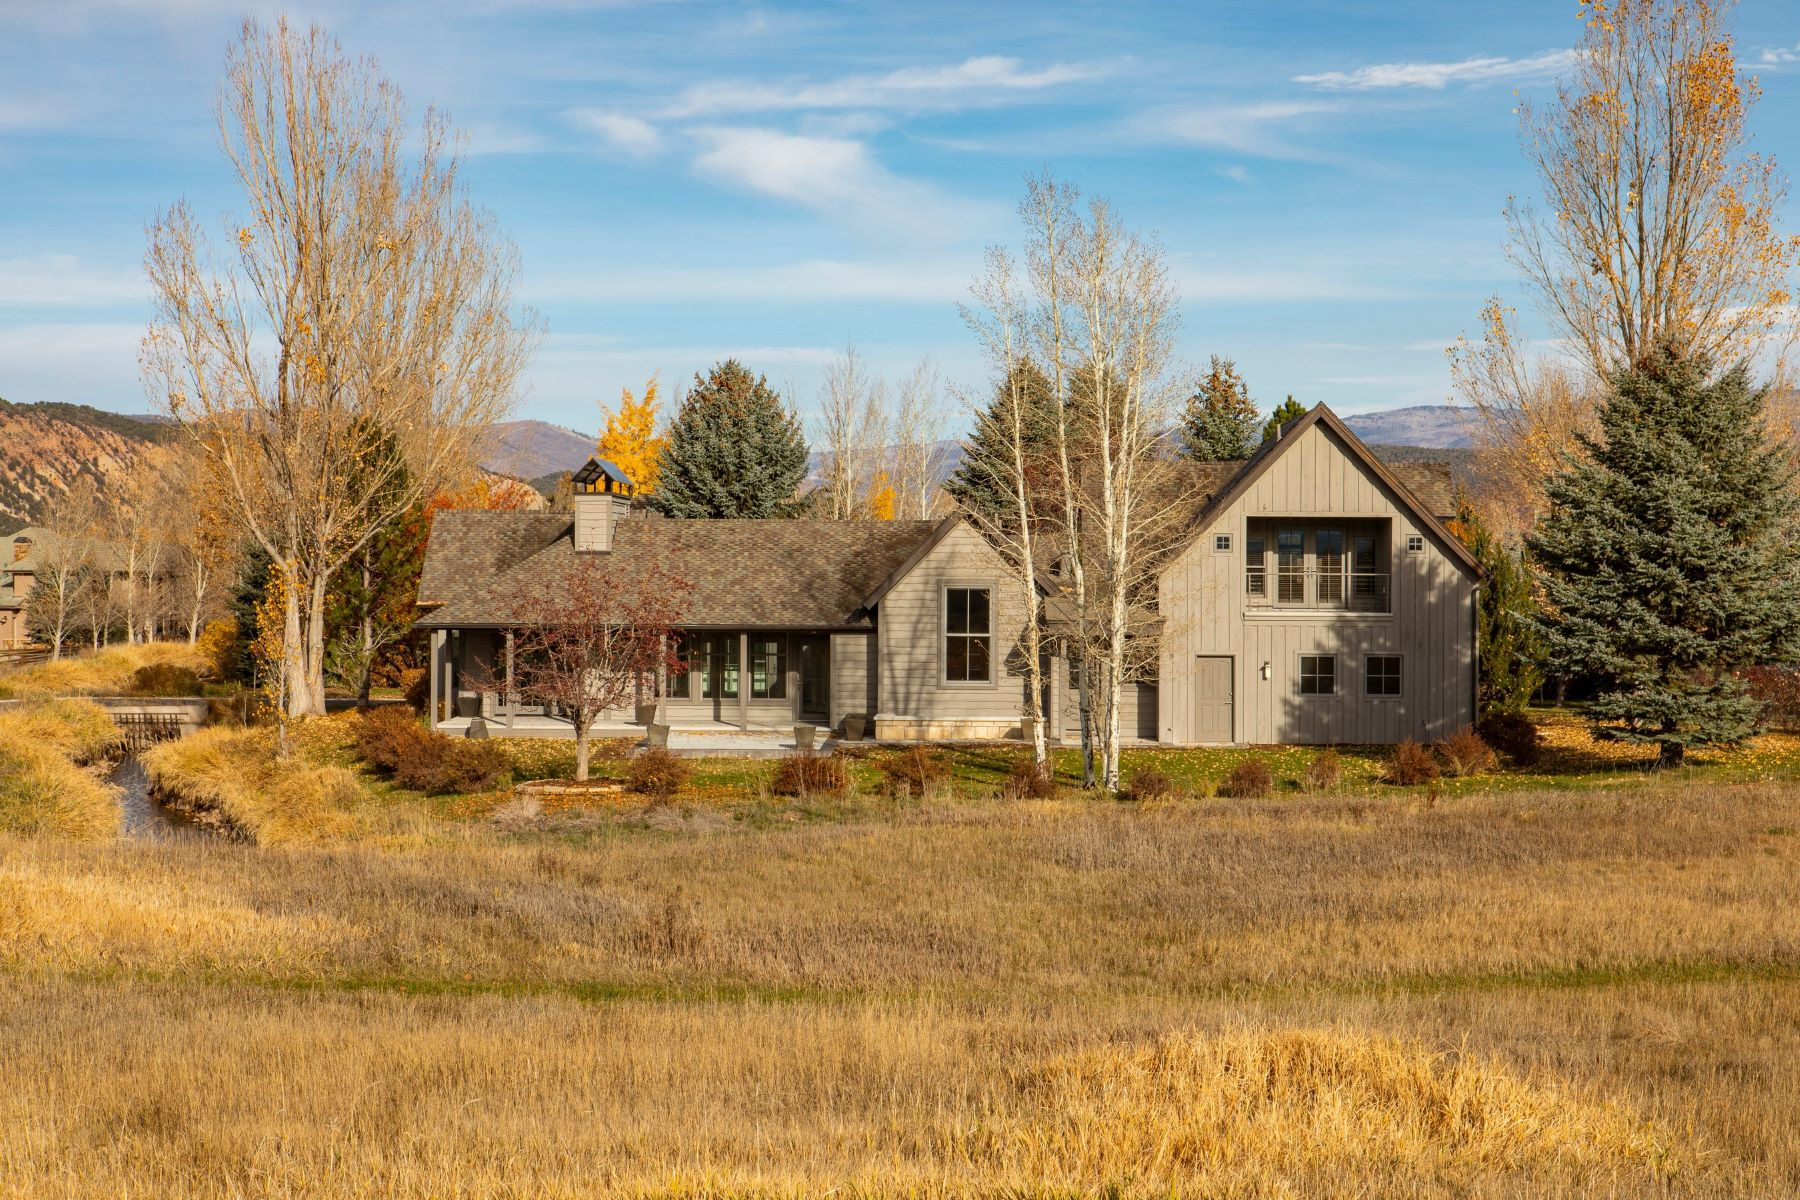 Single Family Homes for Active at Aspen Glen Lot E-40 200 W Diamond A Ranch Road Carbondale, Colorado 81623 United States